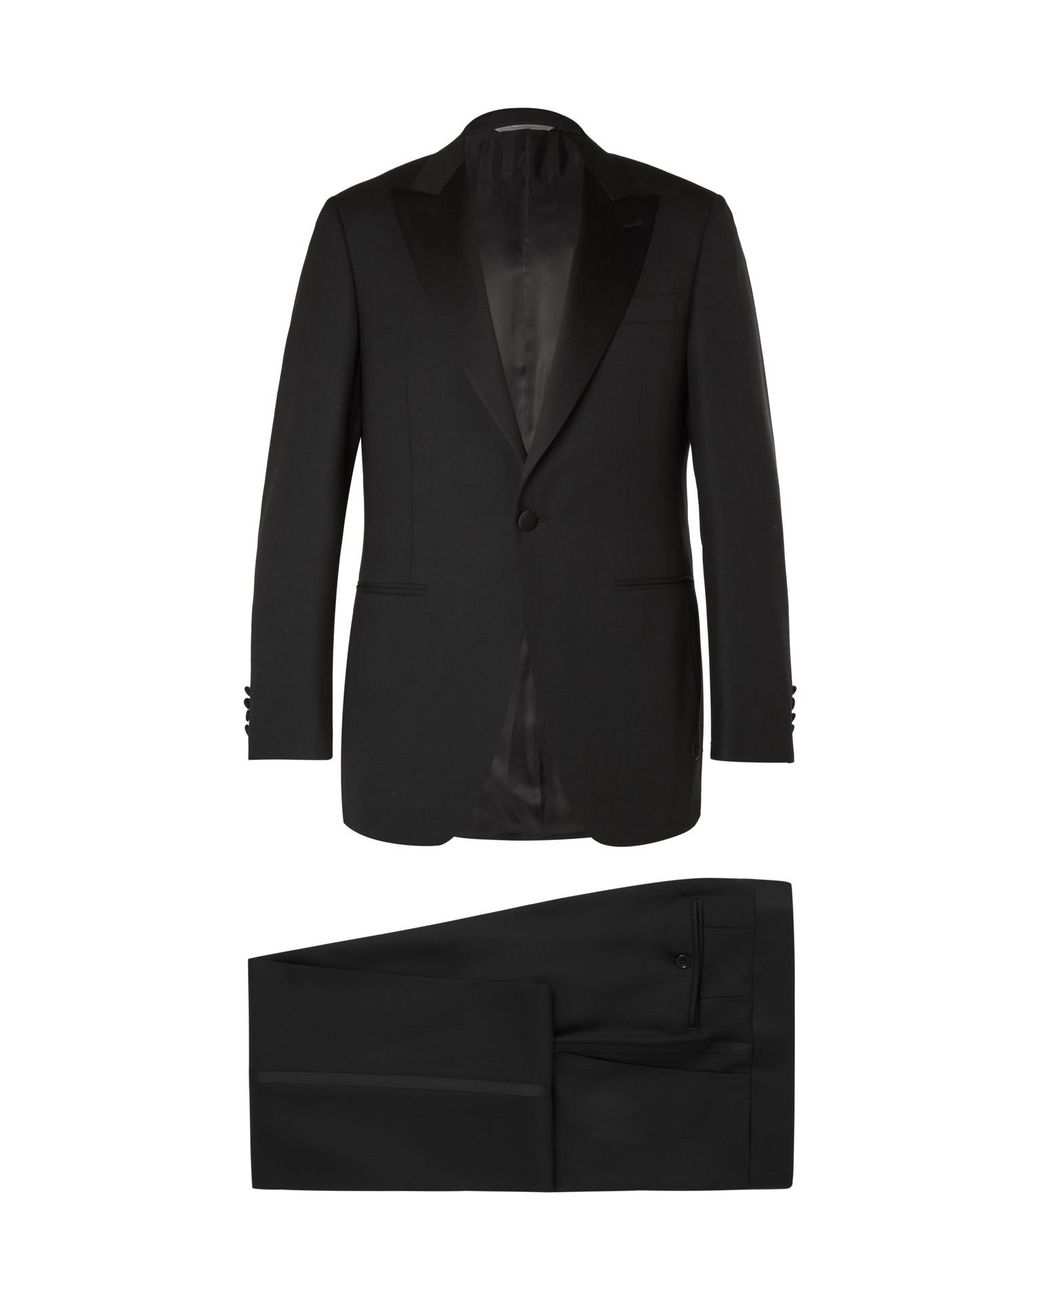 e62d80f6a42 Canali Black Slim-fit Satin-trimmed Wool Tuxedo in Black for Men - Lyst